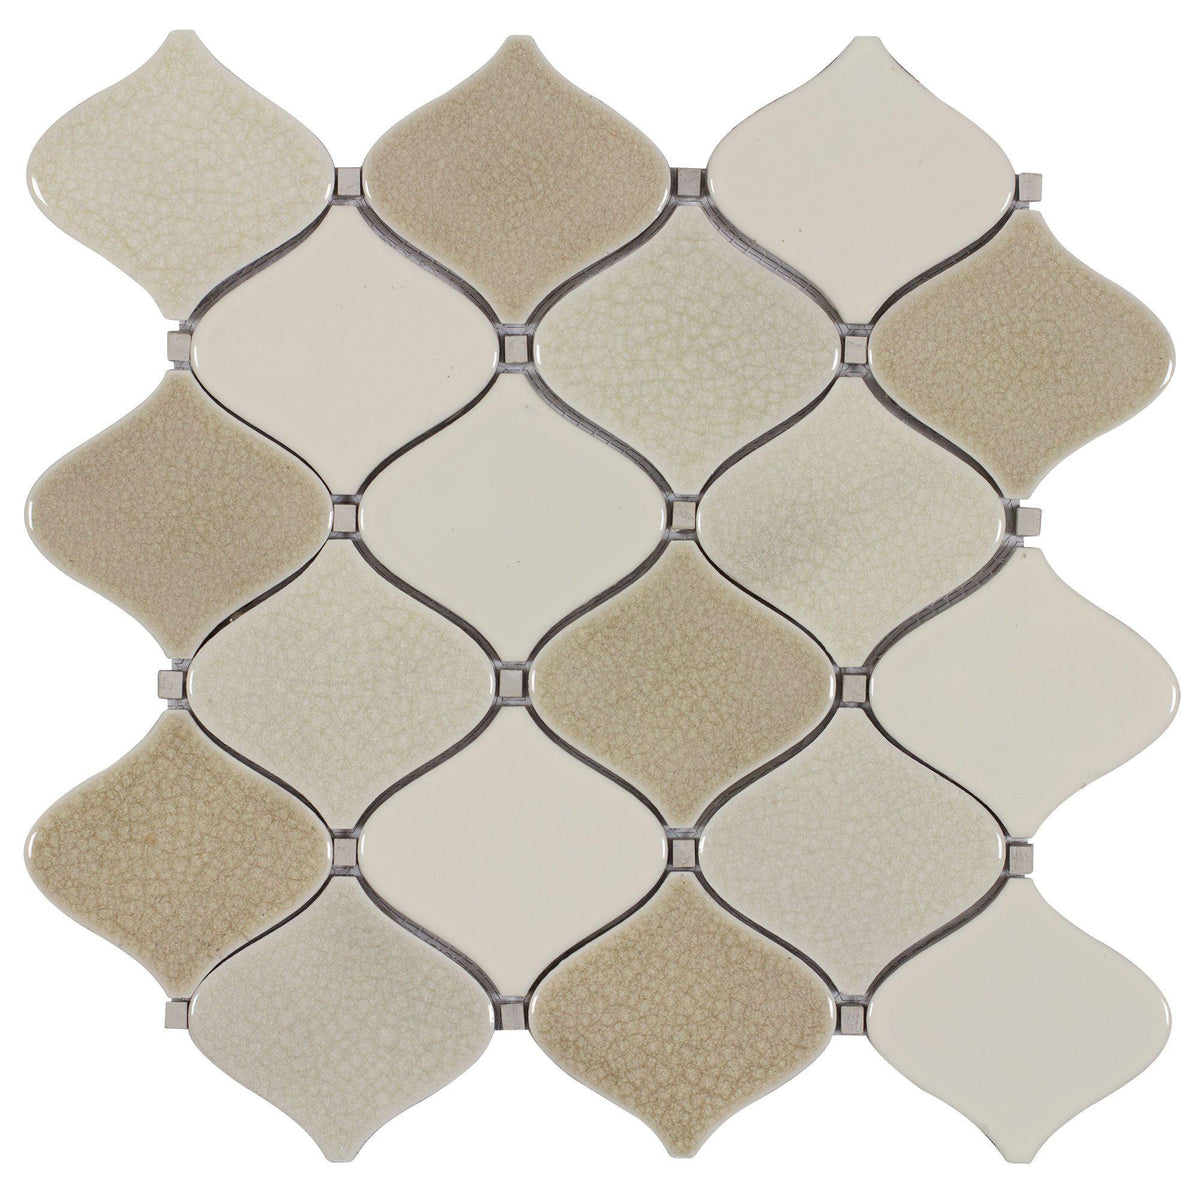 Arabesque Beige White Glazed Porcelain Mosaic Tile Mto0118